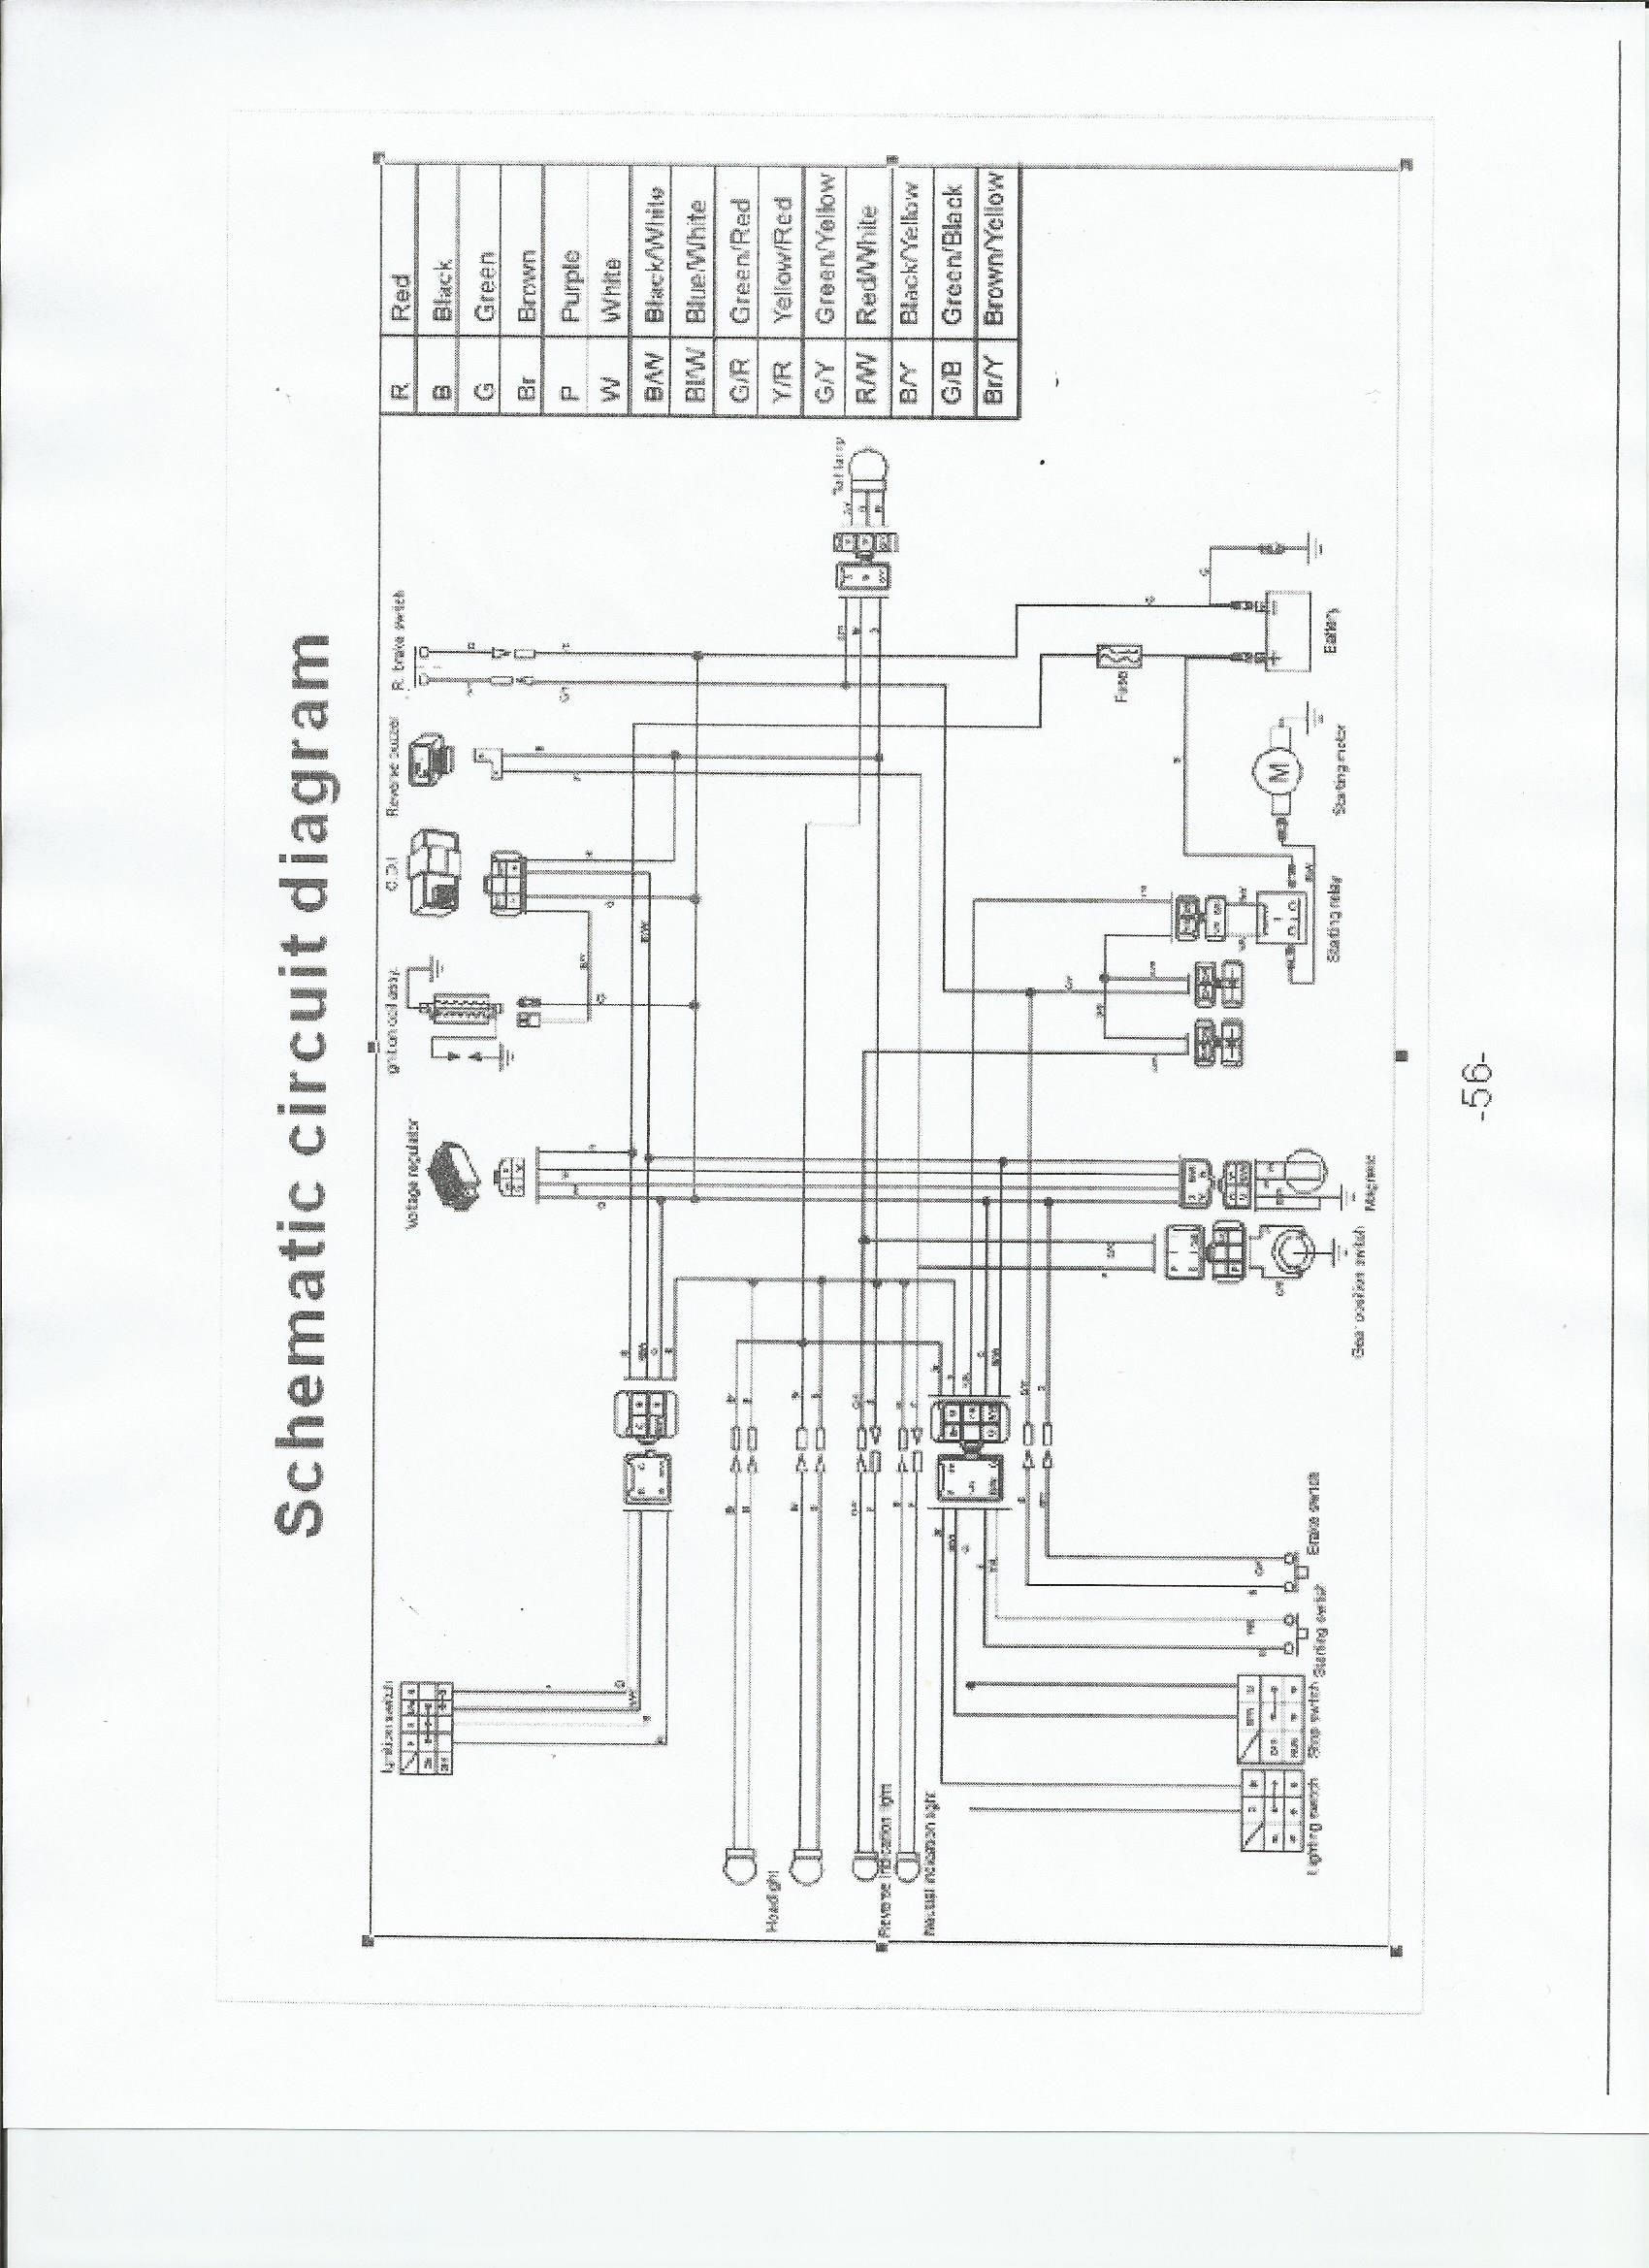 Wiring Diagram For 2001 400ex | New Wiring Resources 2019 on